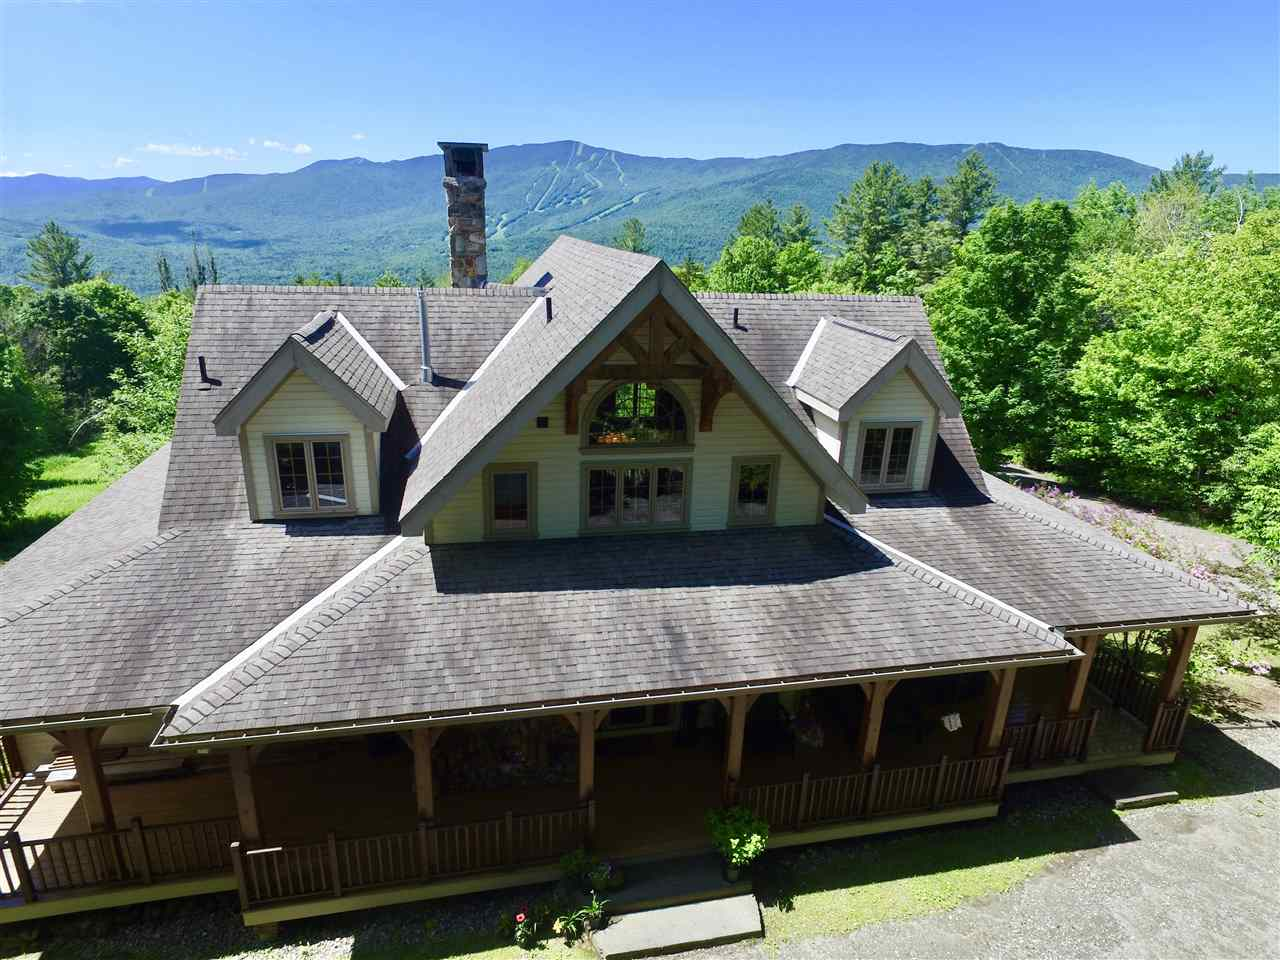 704 Stagecoach Road, Fayston, VT 05673